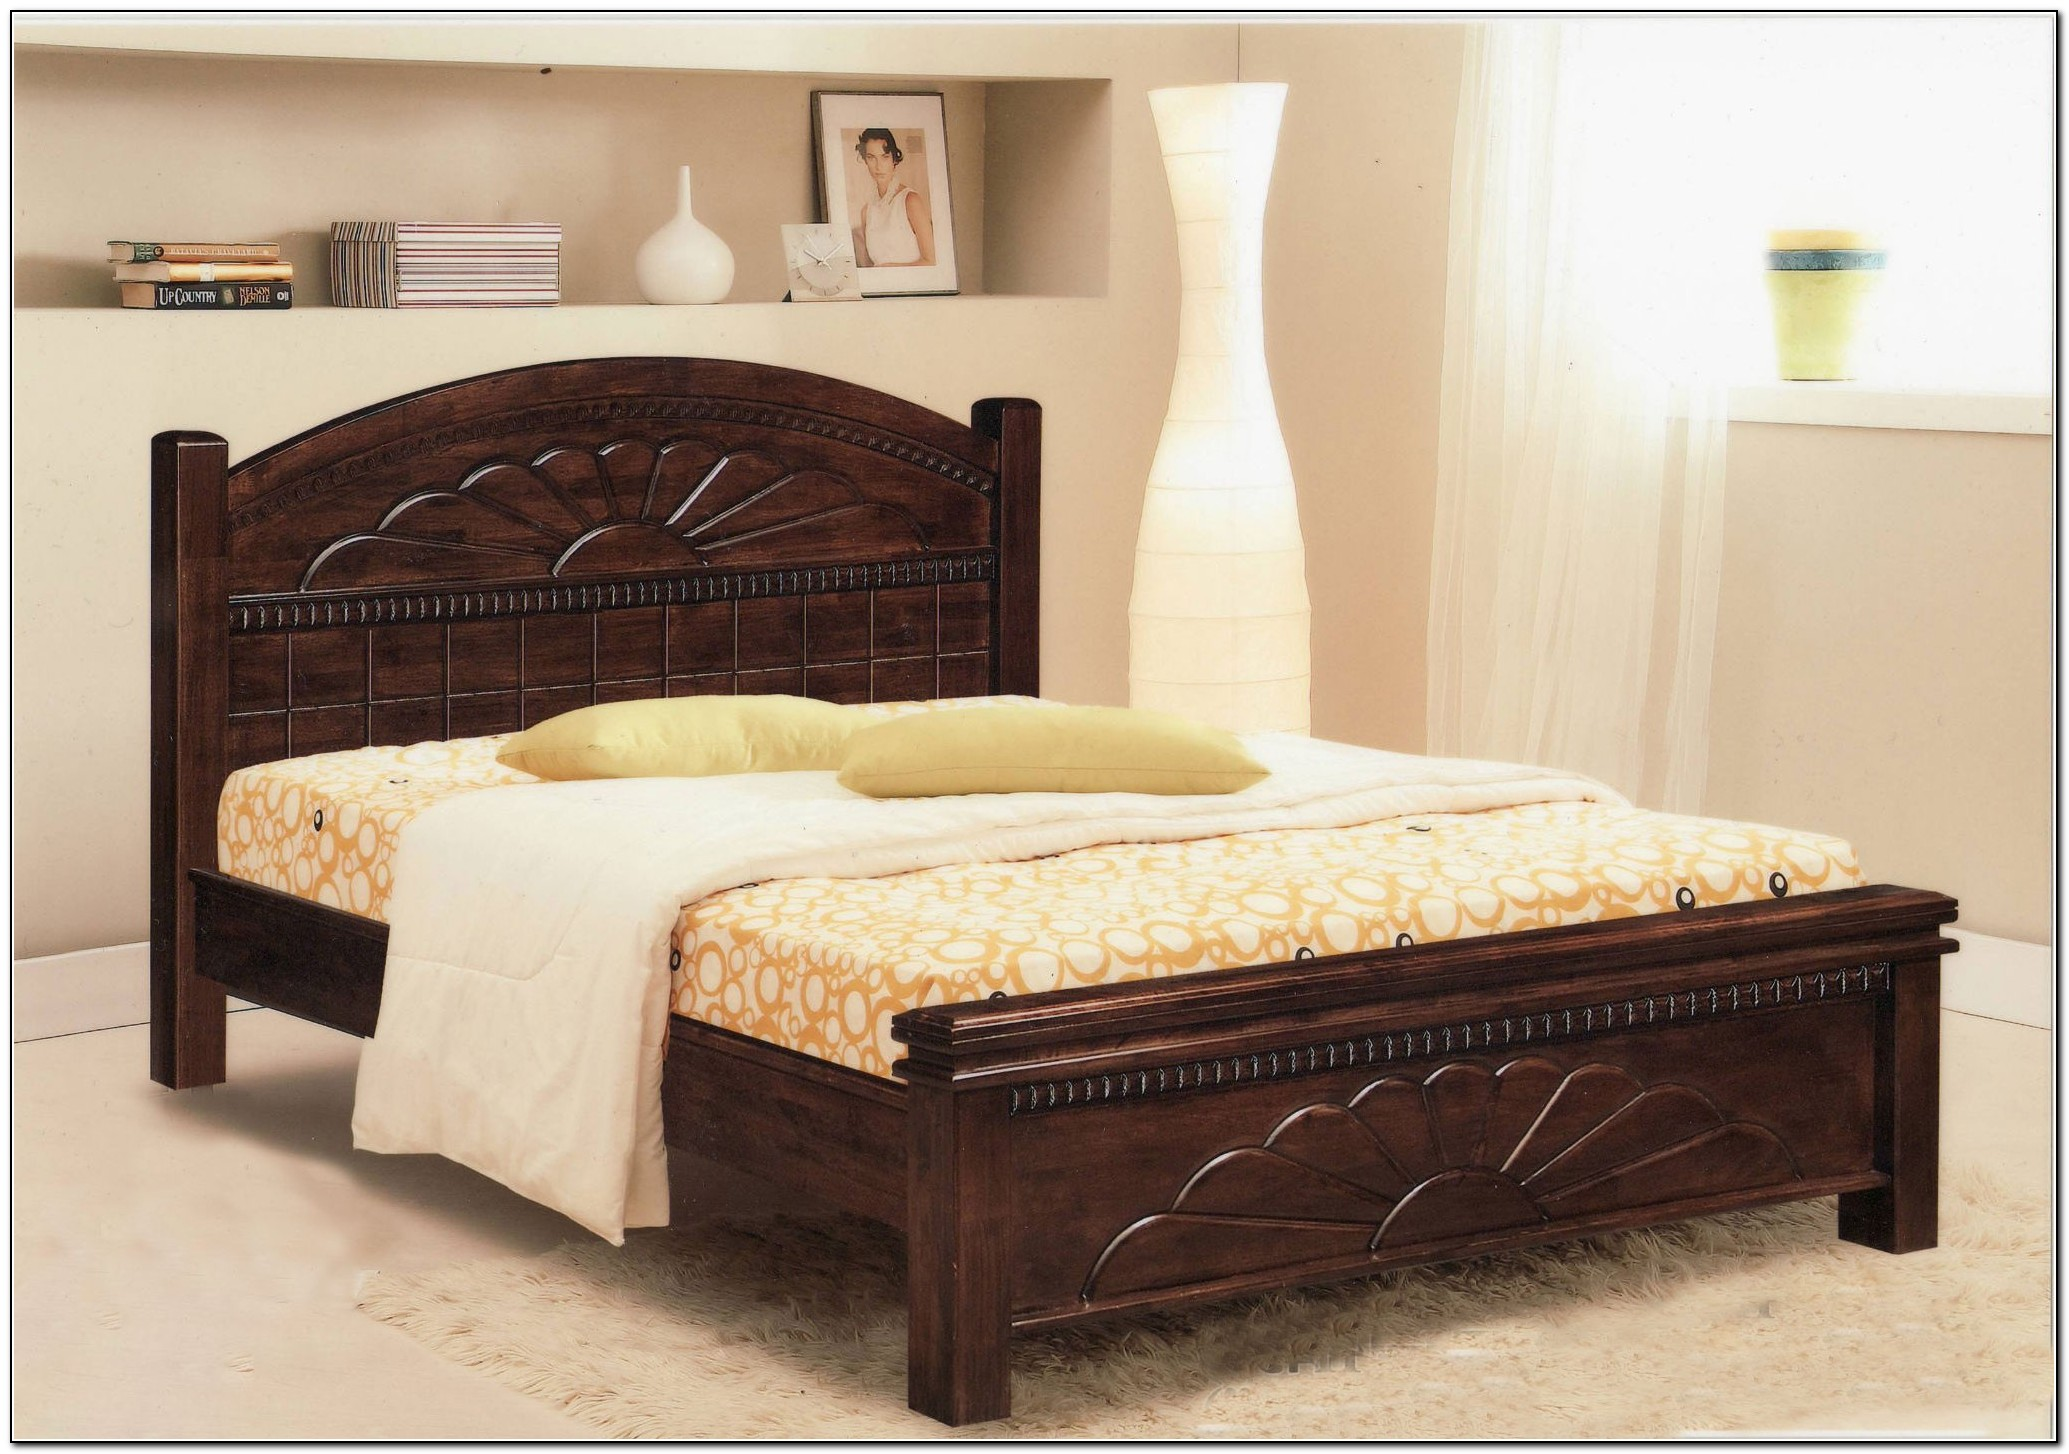 King size bed frame wood beds home design ideas for King size bed designs